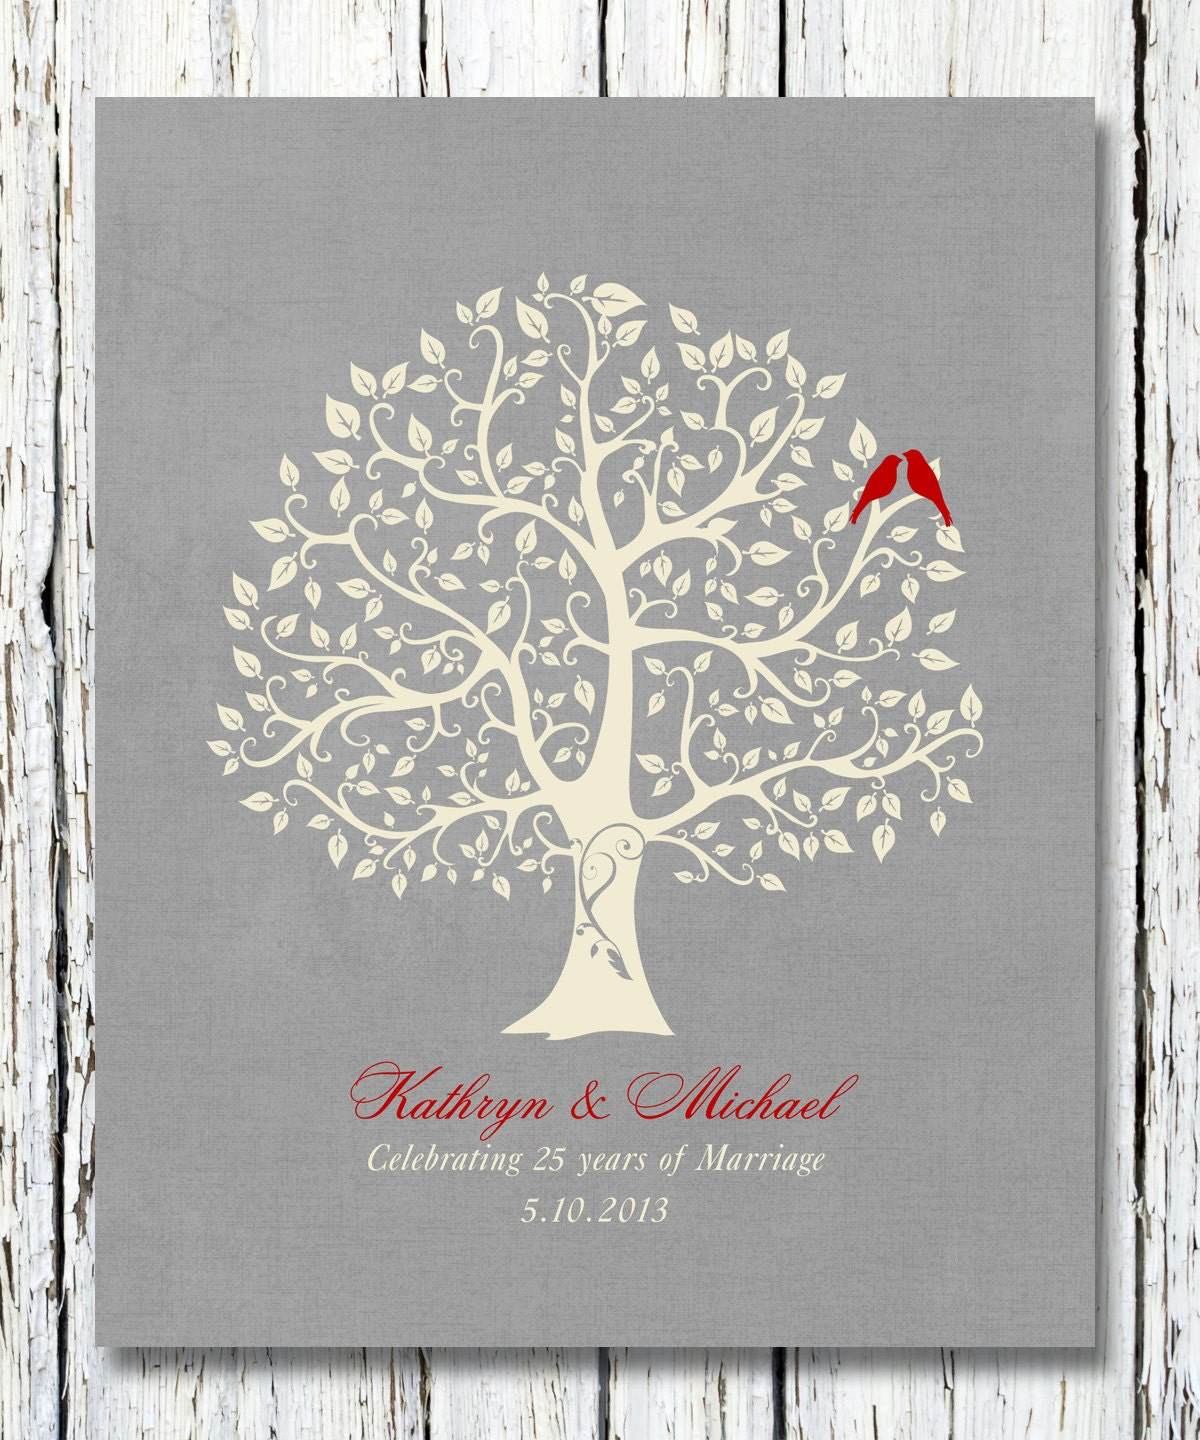 Gift Ideas For Silver Wedding Anniversary For Friends : 25th Silver Wedding Anniversary Tree Gift Anniversary gift